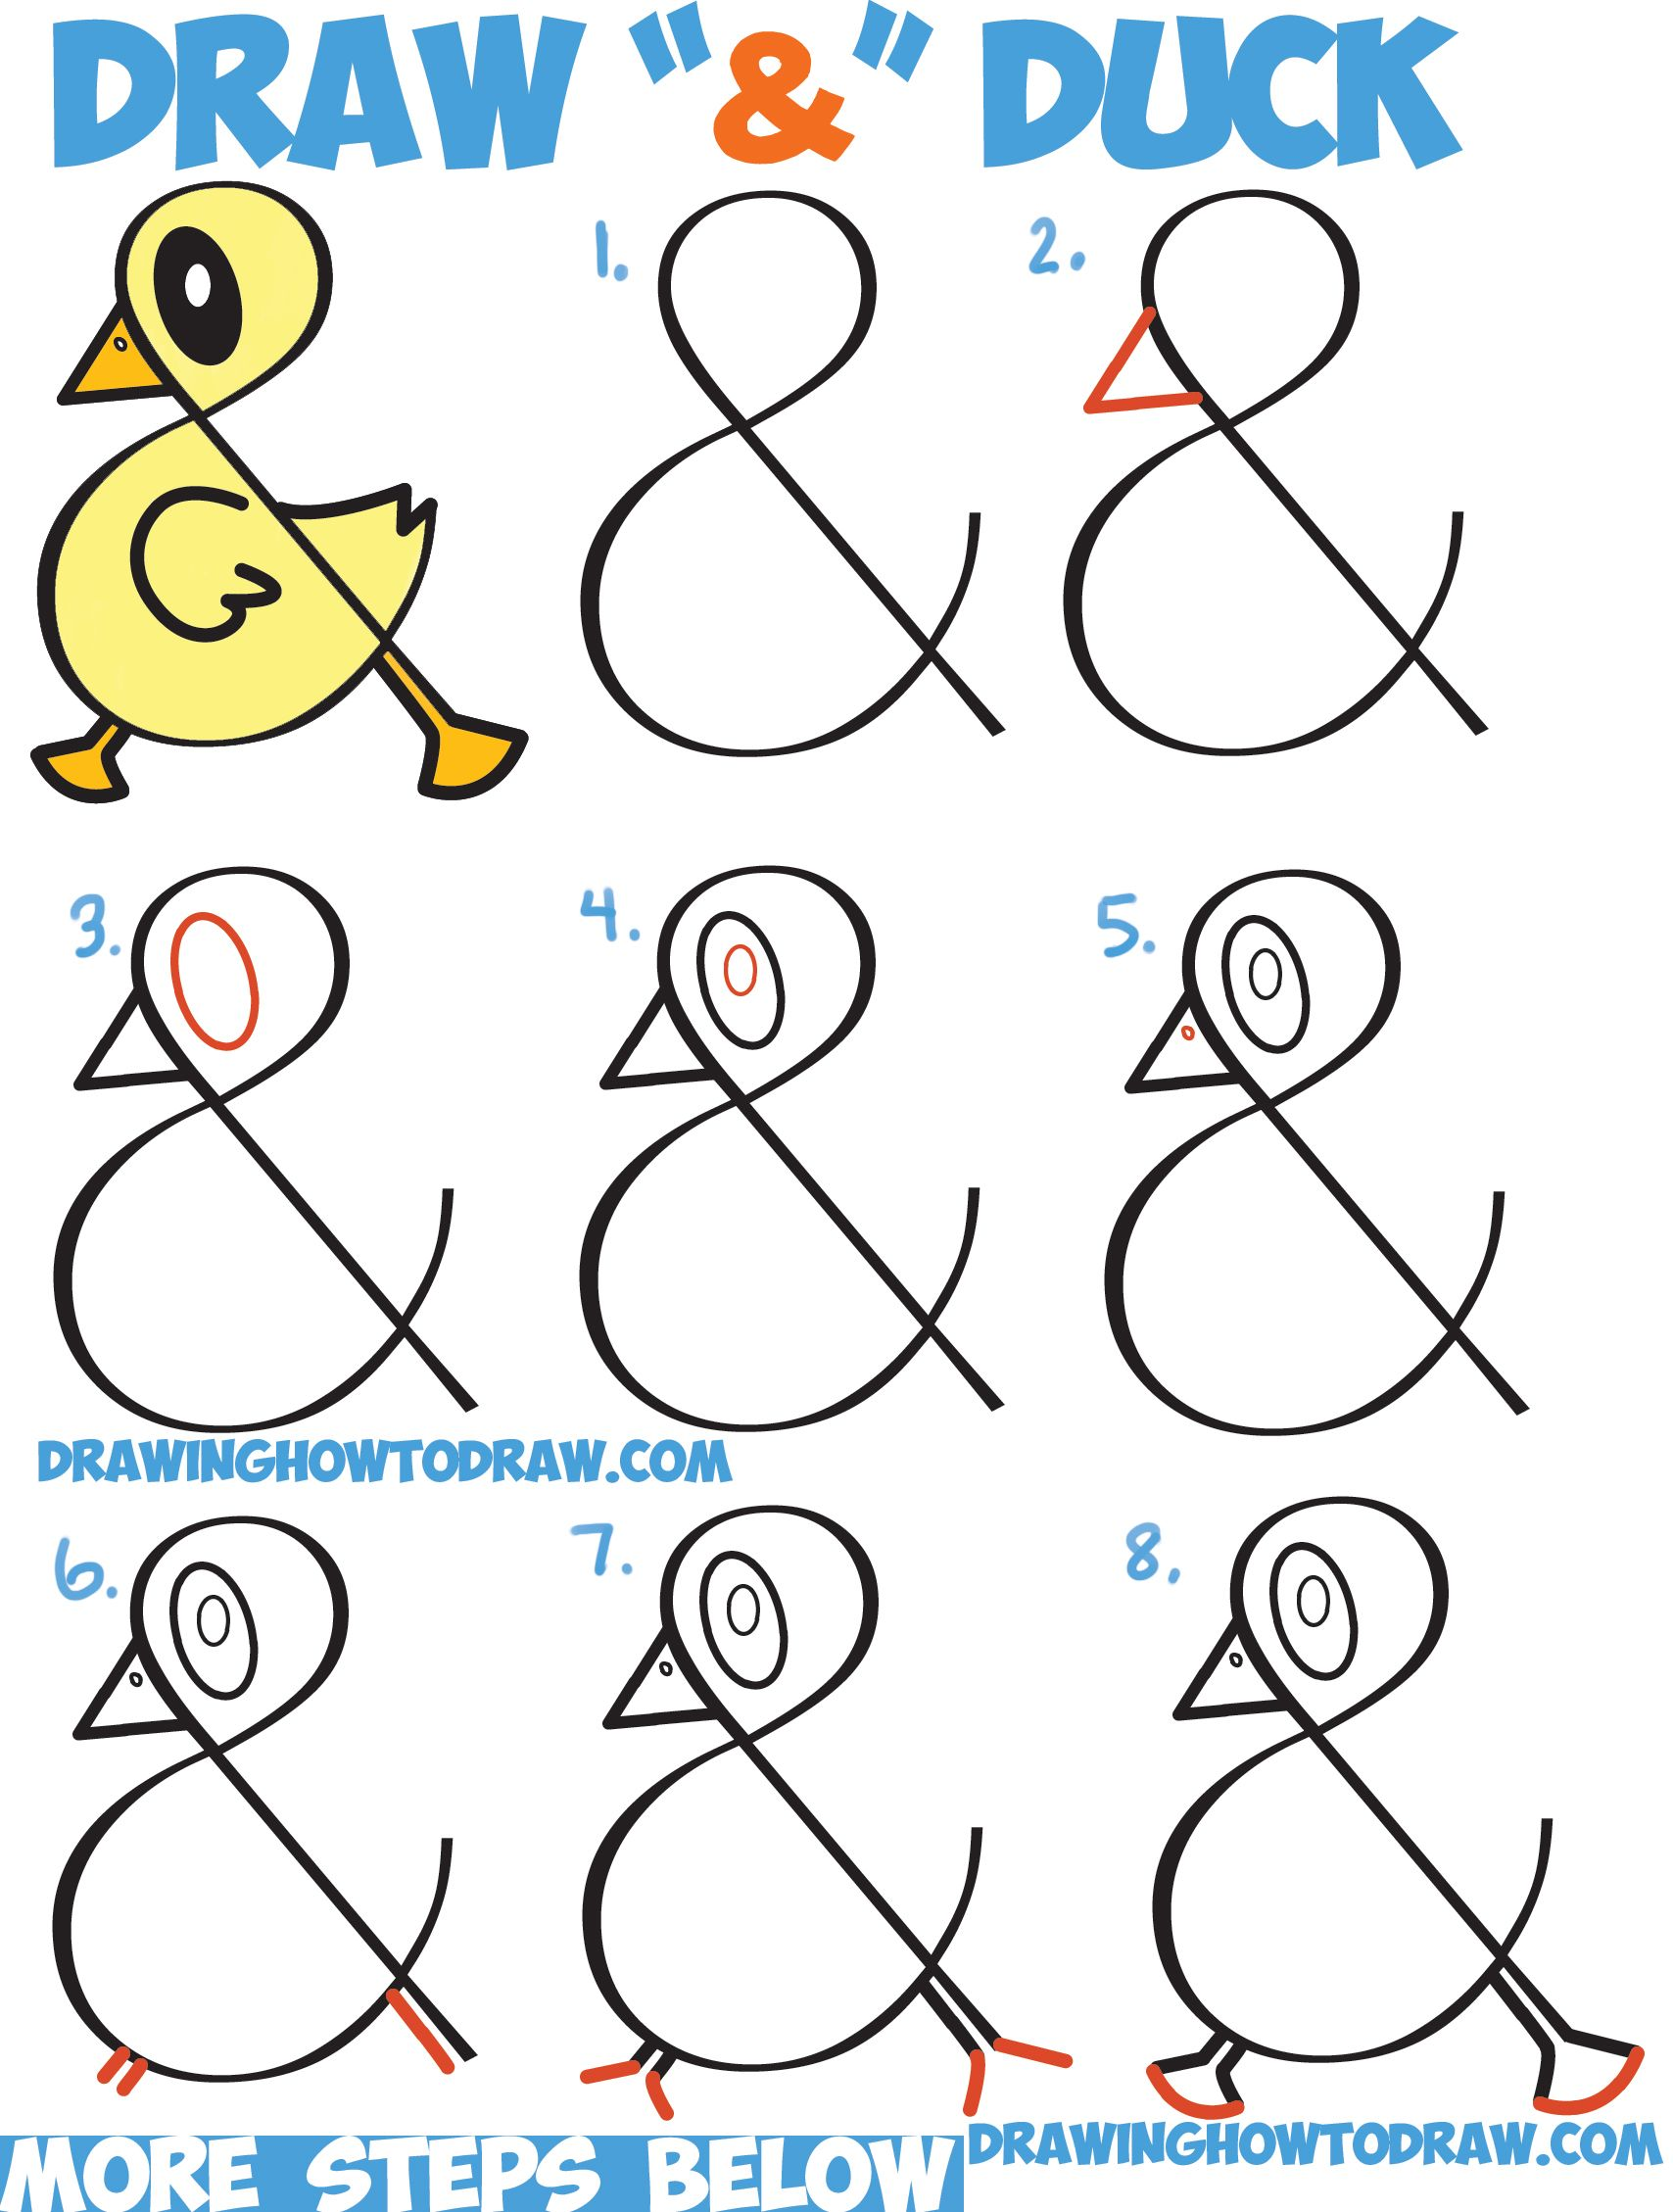 how to draw a cute cartoon duck from ampersand symbol easy step by step drawing - Cartoon Drawing For Children